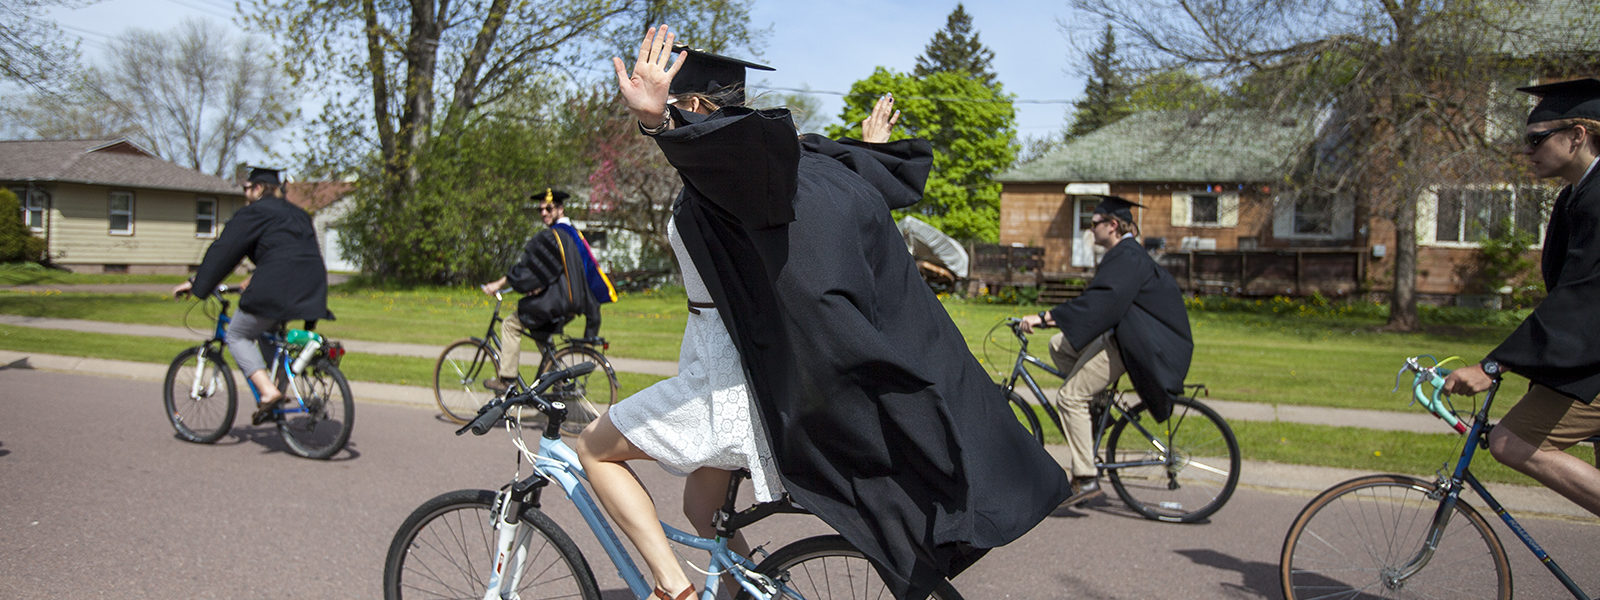 Graduate riding a bike with no hands